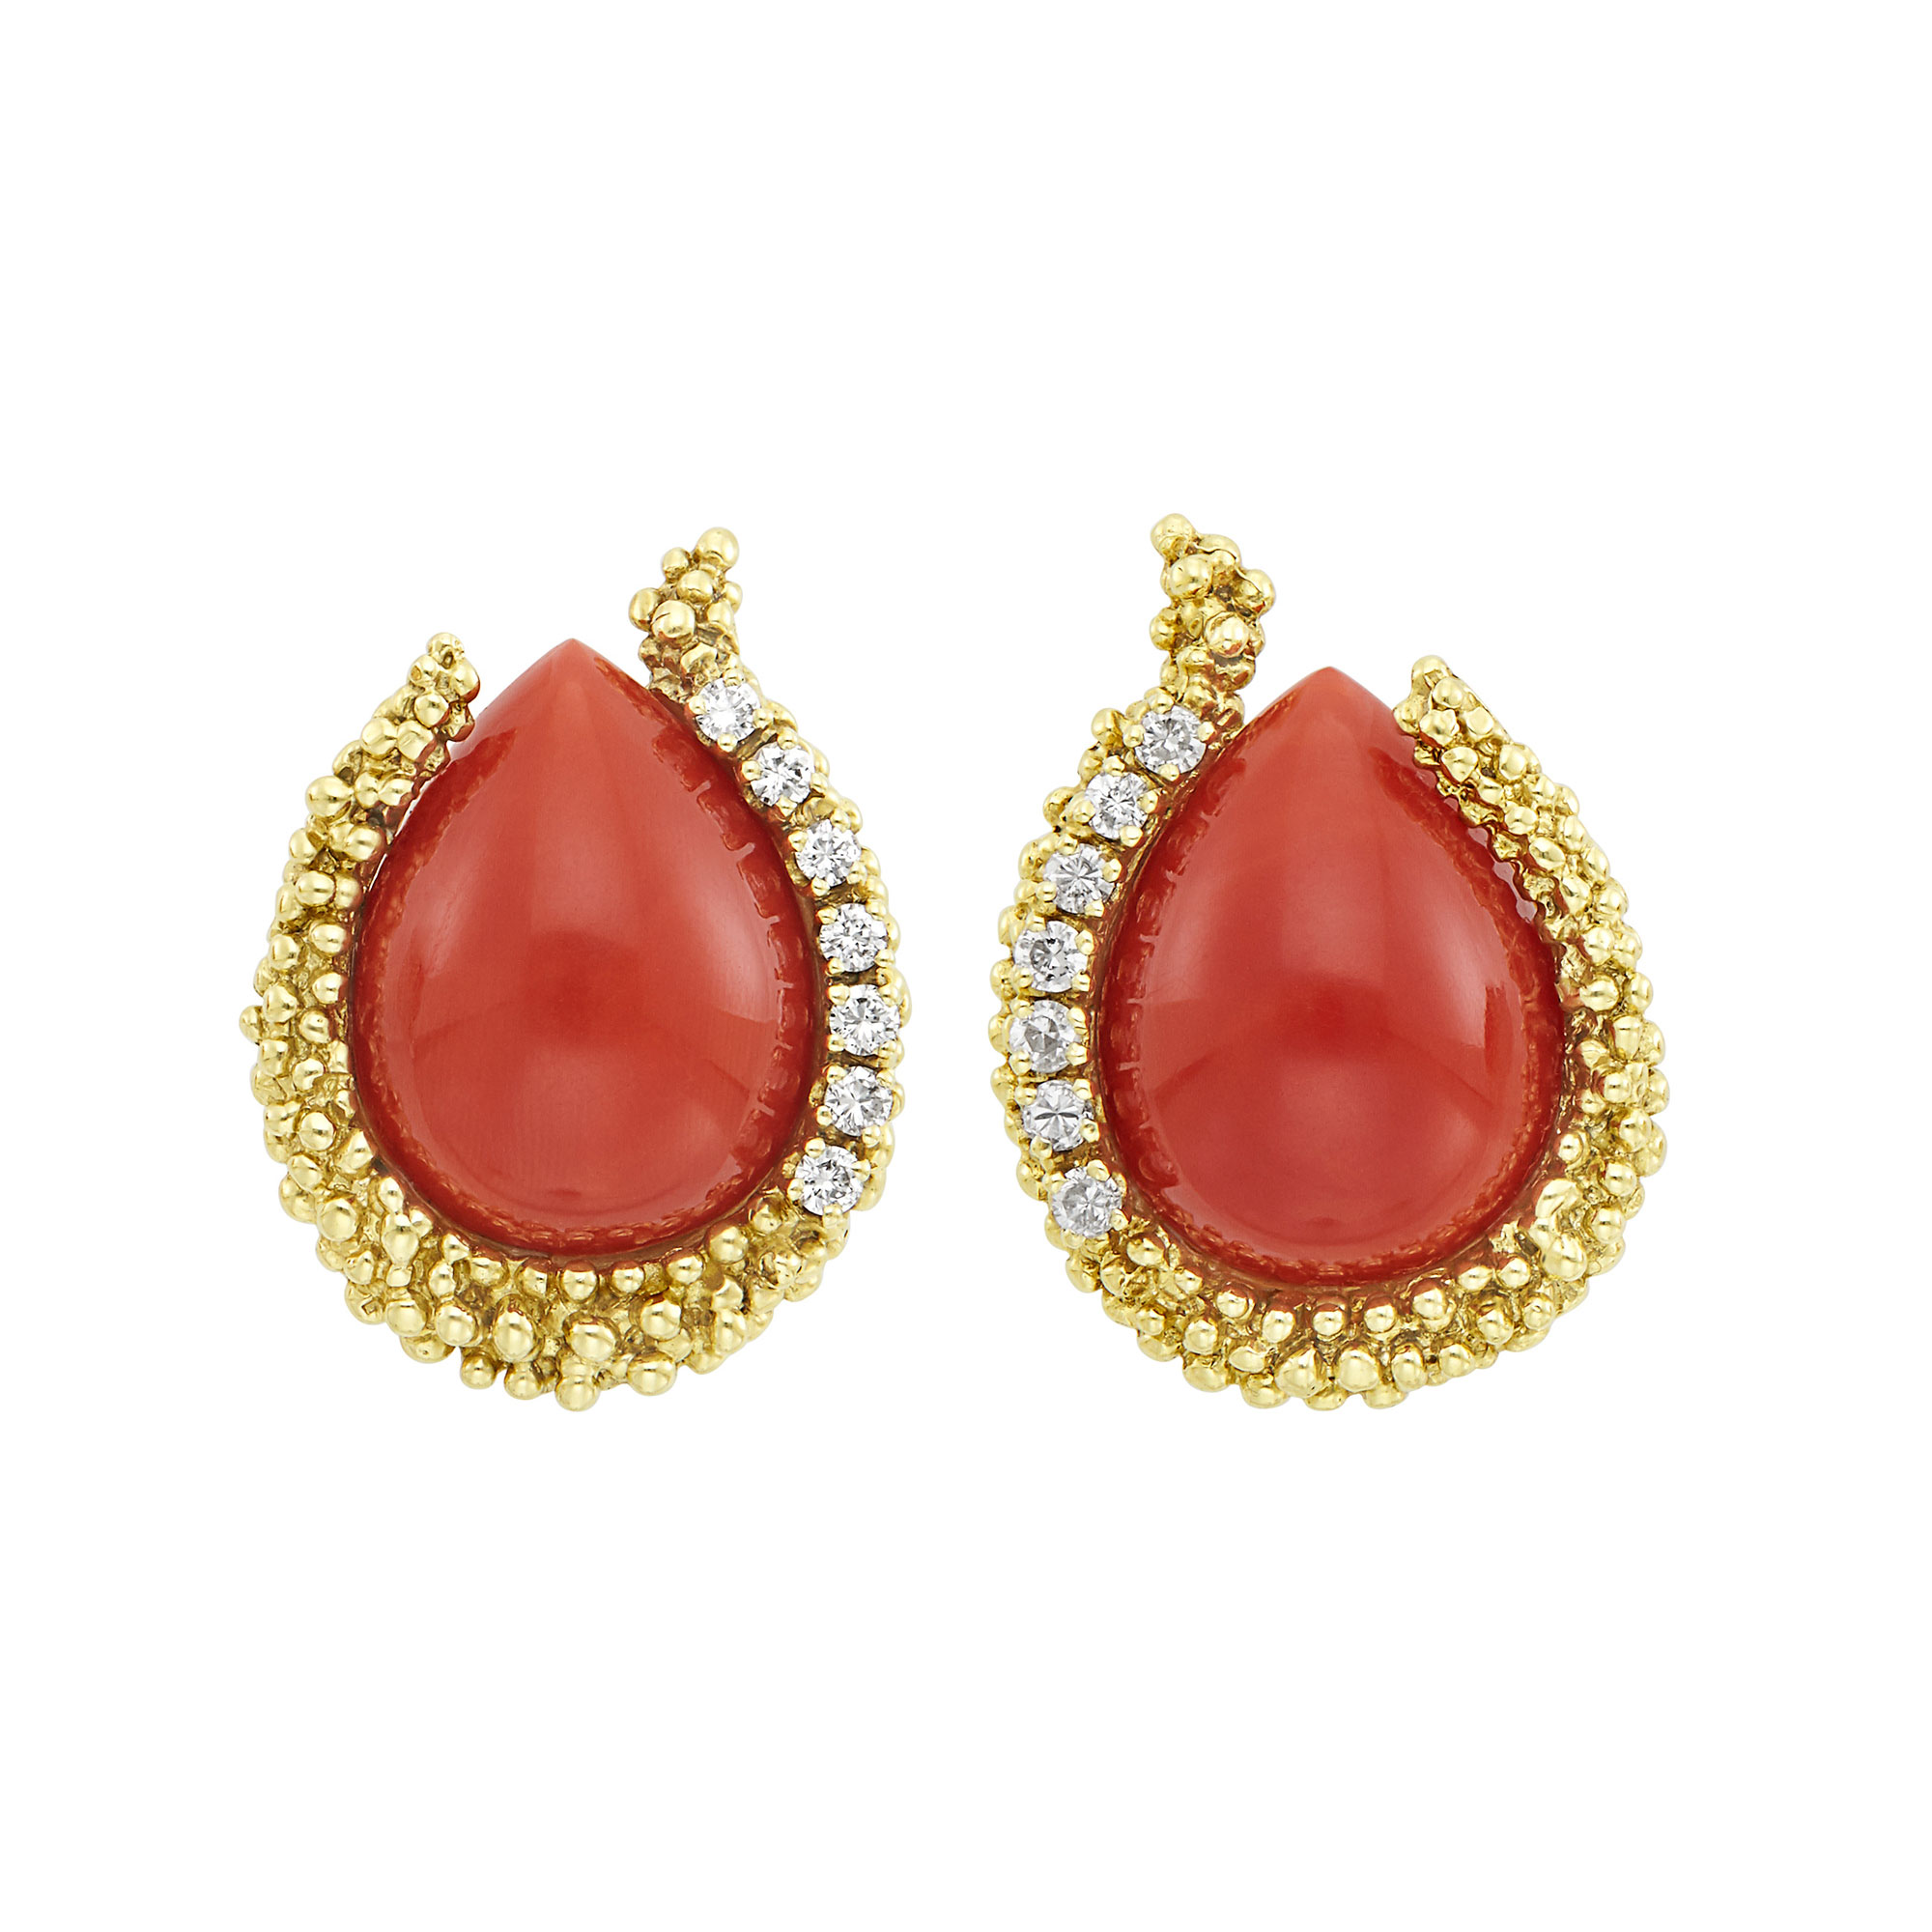 Lot image - Pair of Gold, Coral and Diamond Earrings